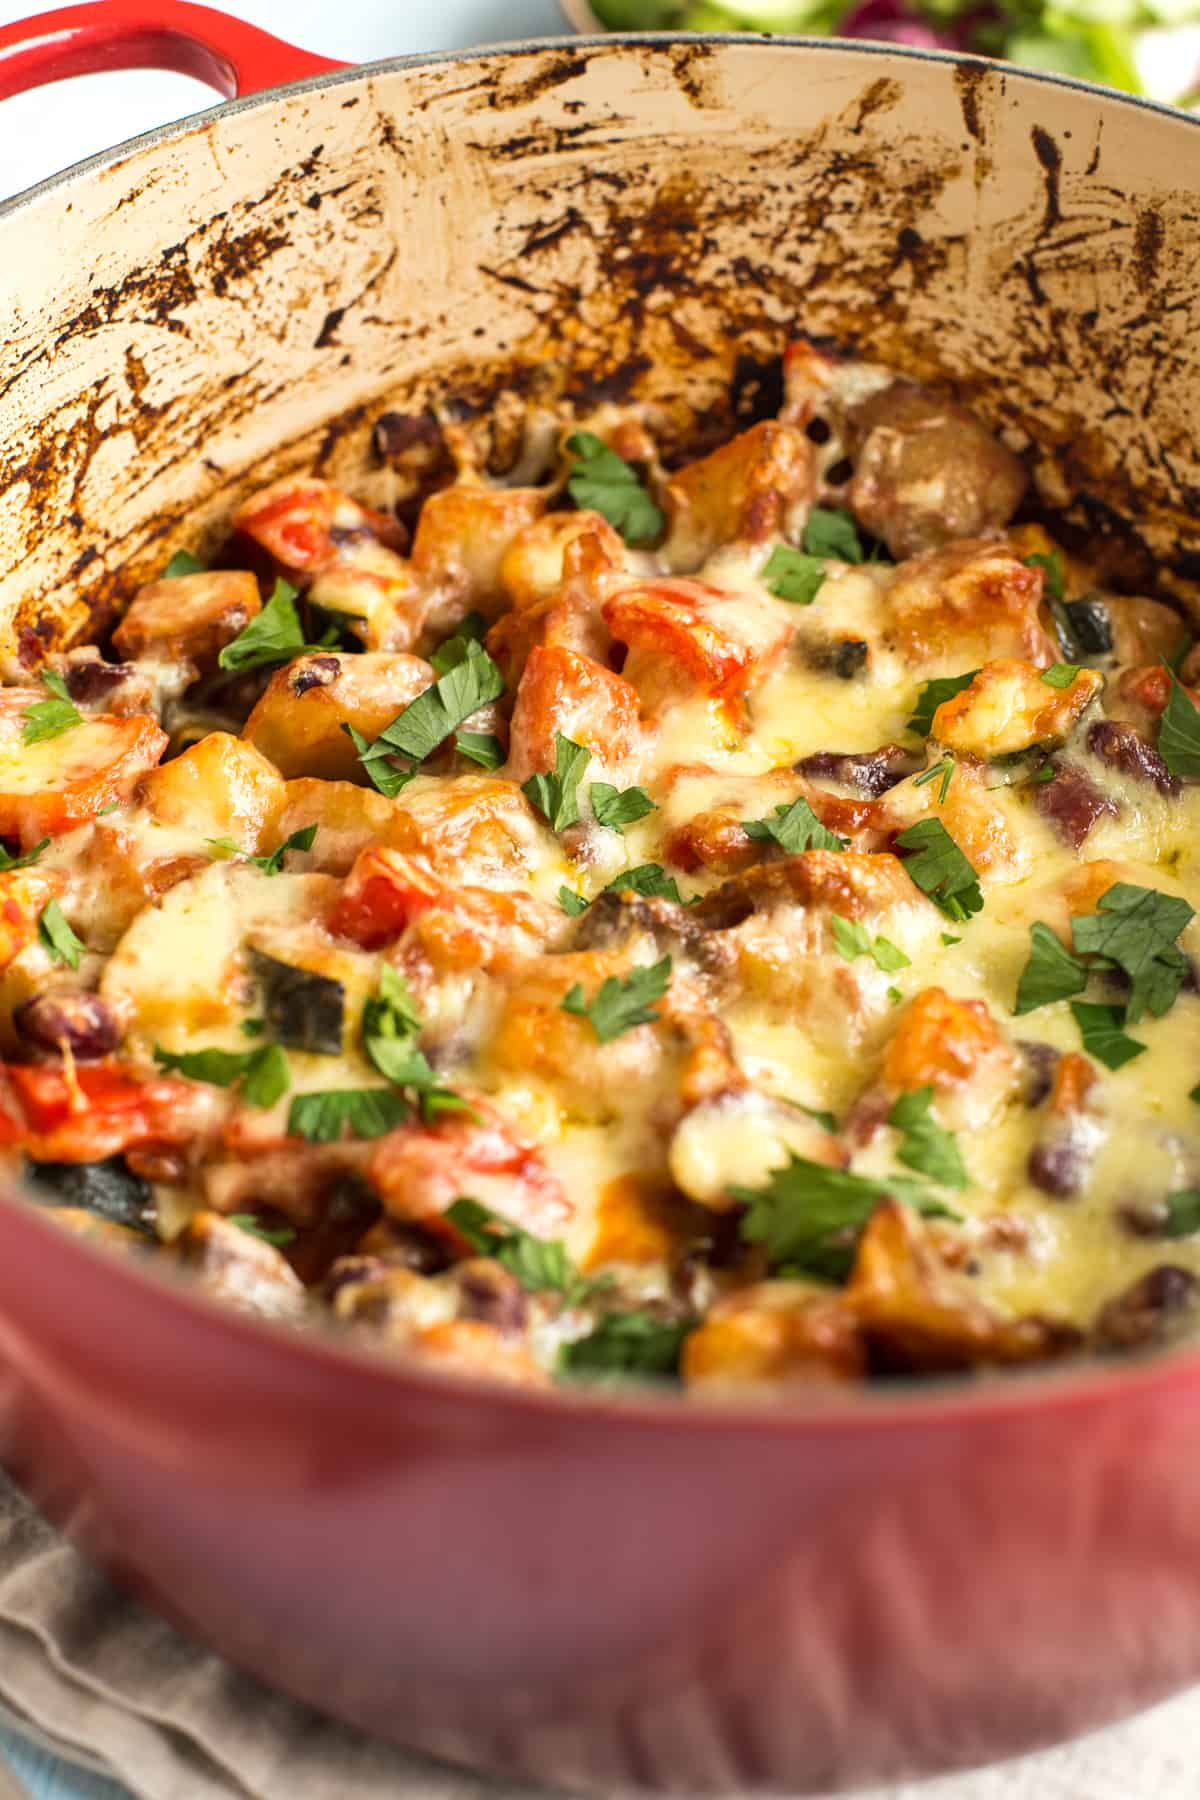 Portion of cheesy Mexican bean and potato bake in a bowl topped with cilantro.